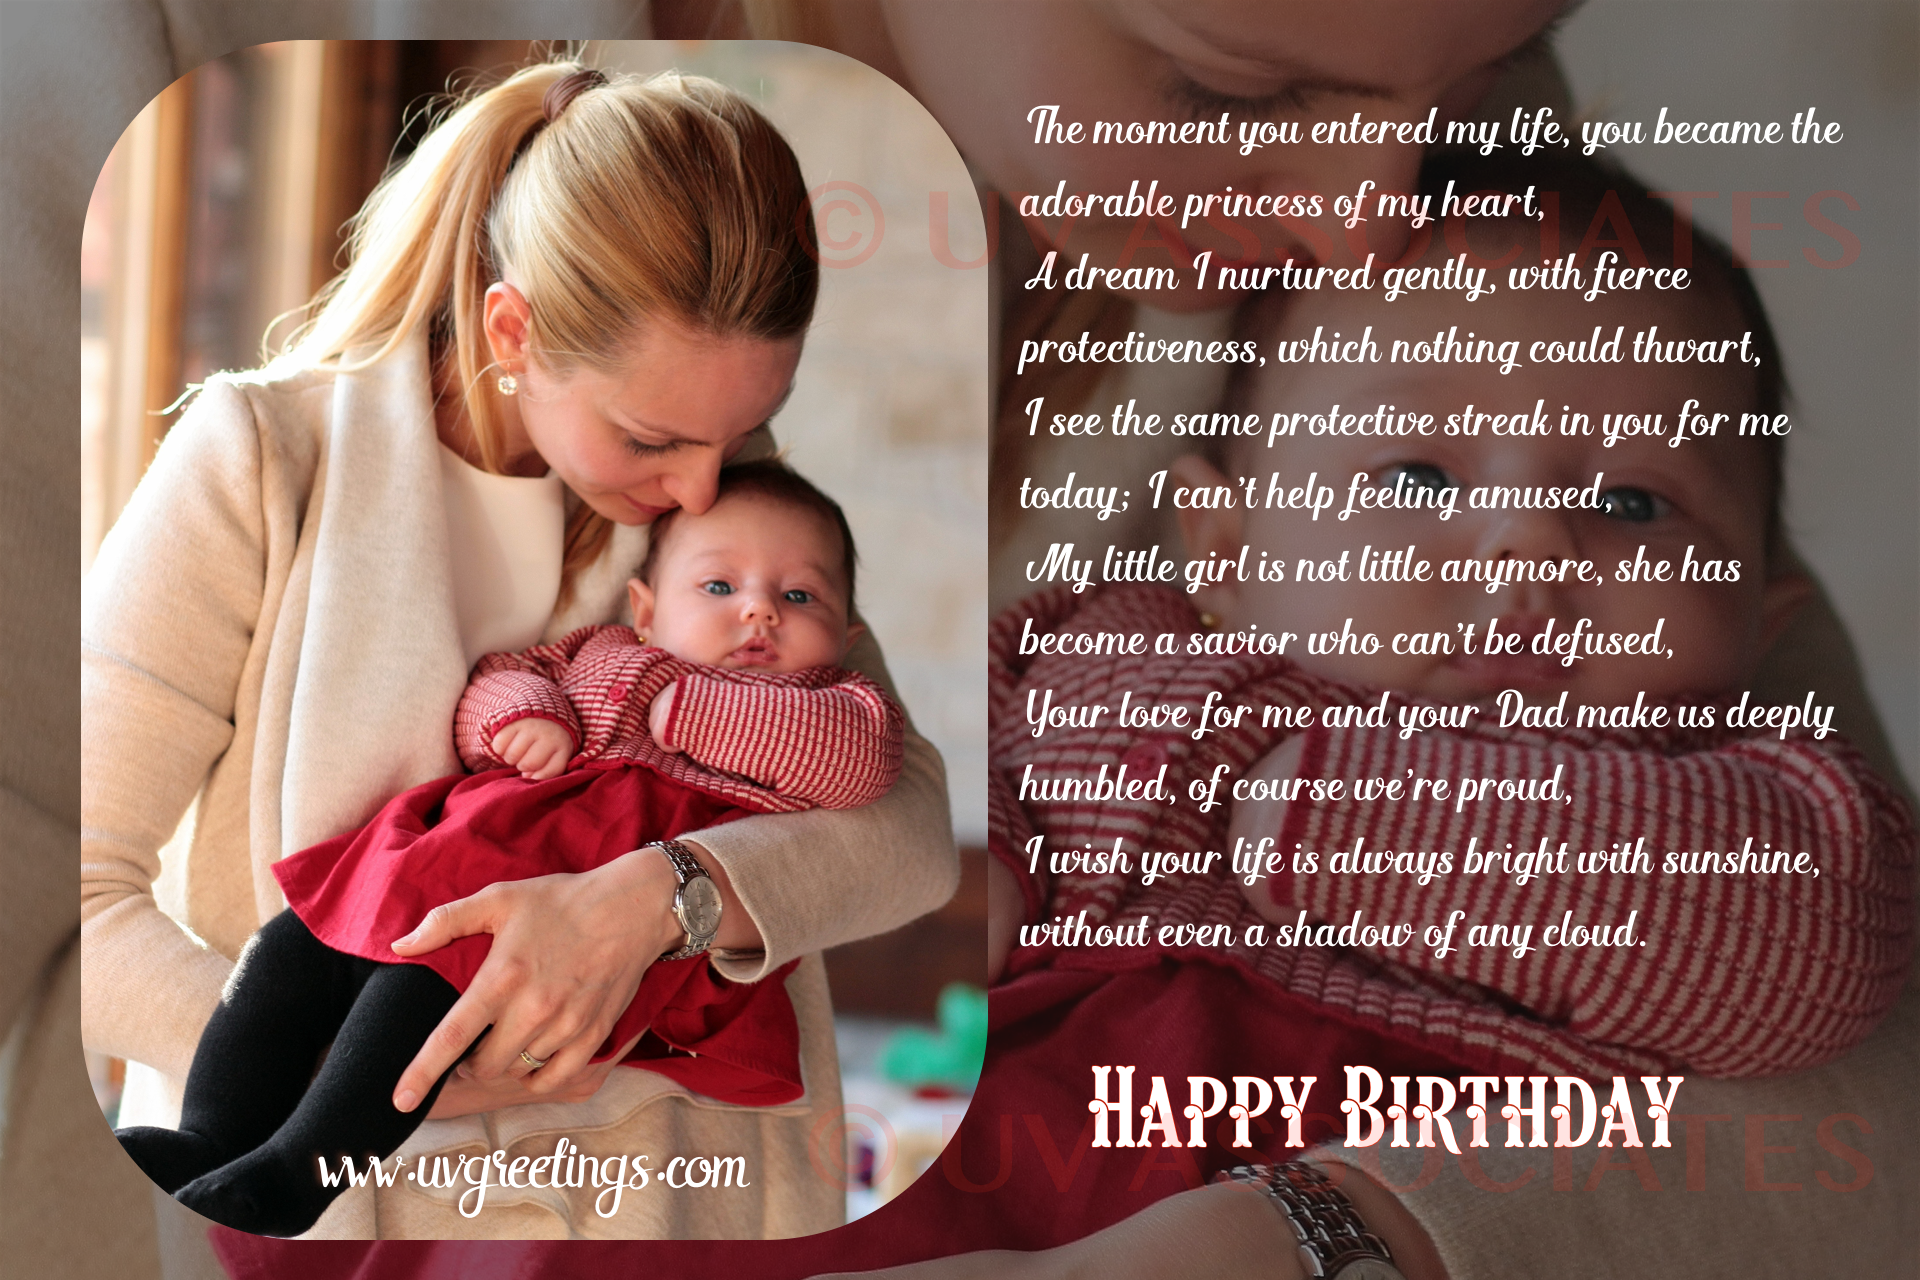 Happy Birthday Daughter - Quotes, Texts and Poems from Mom ...